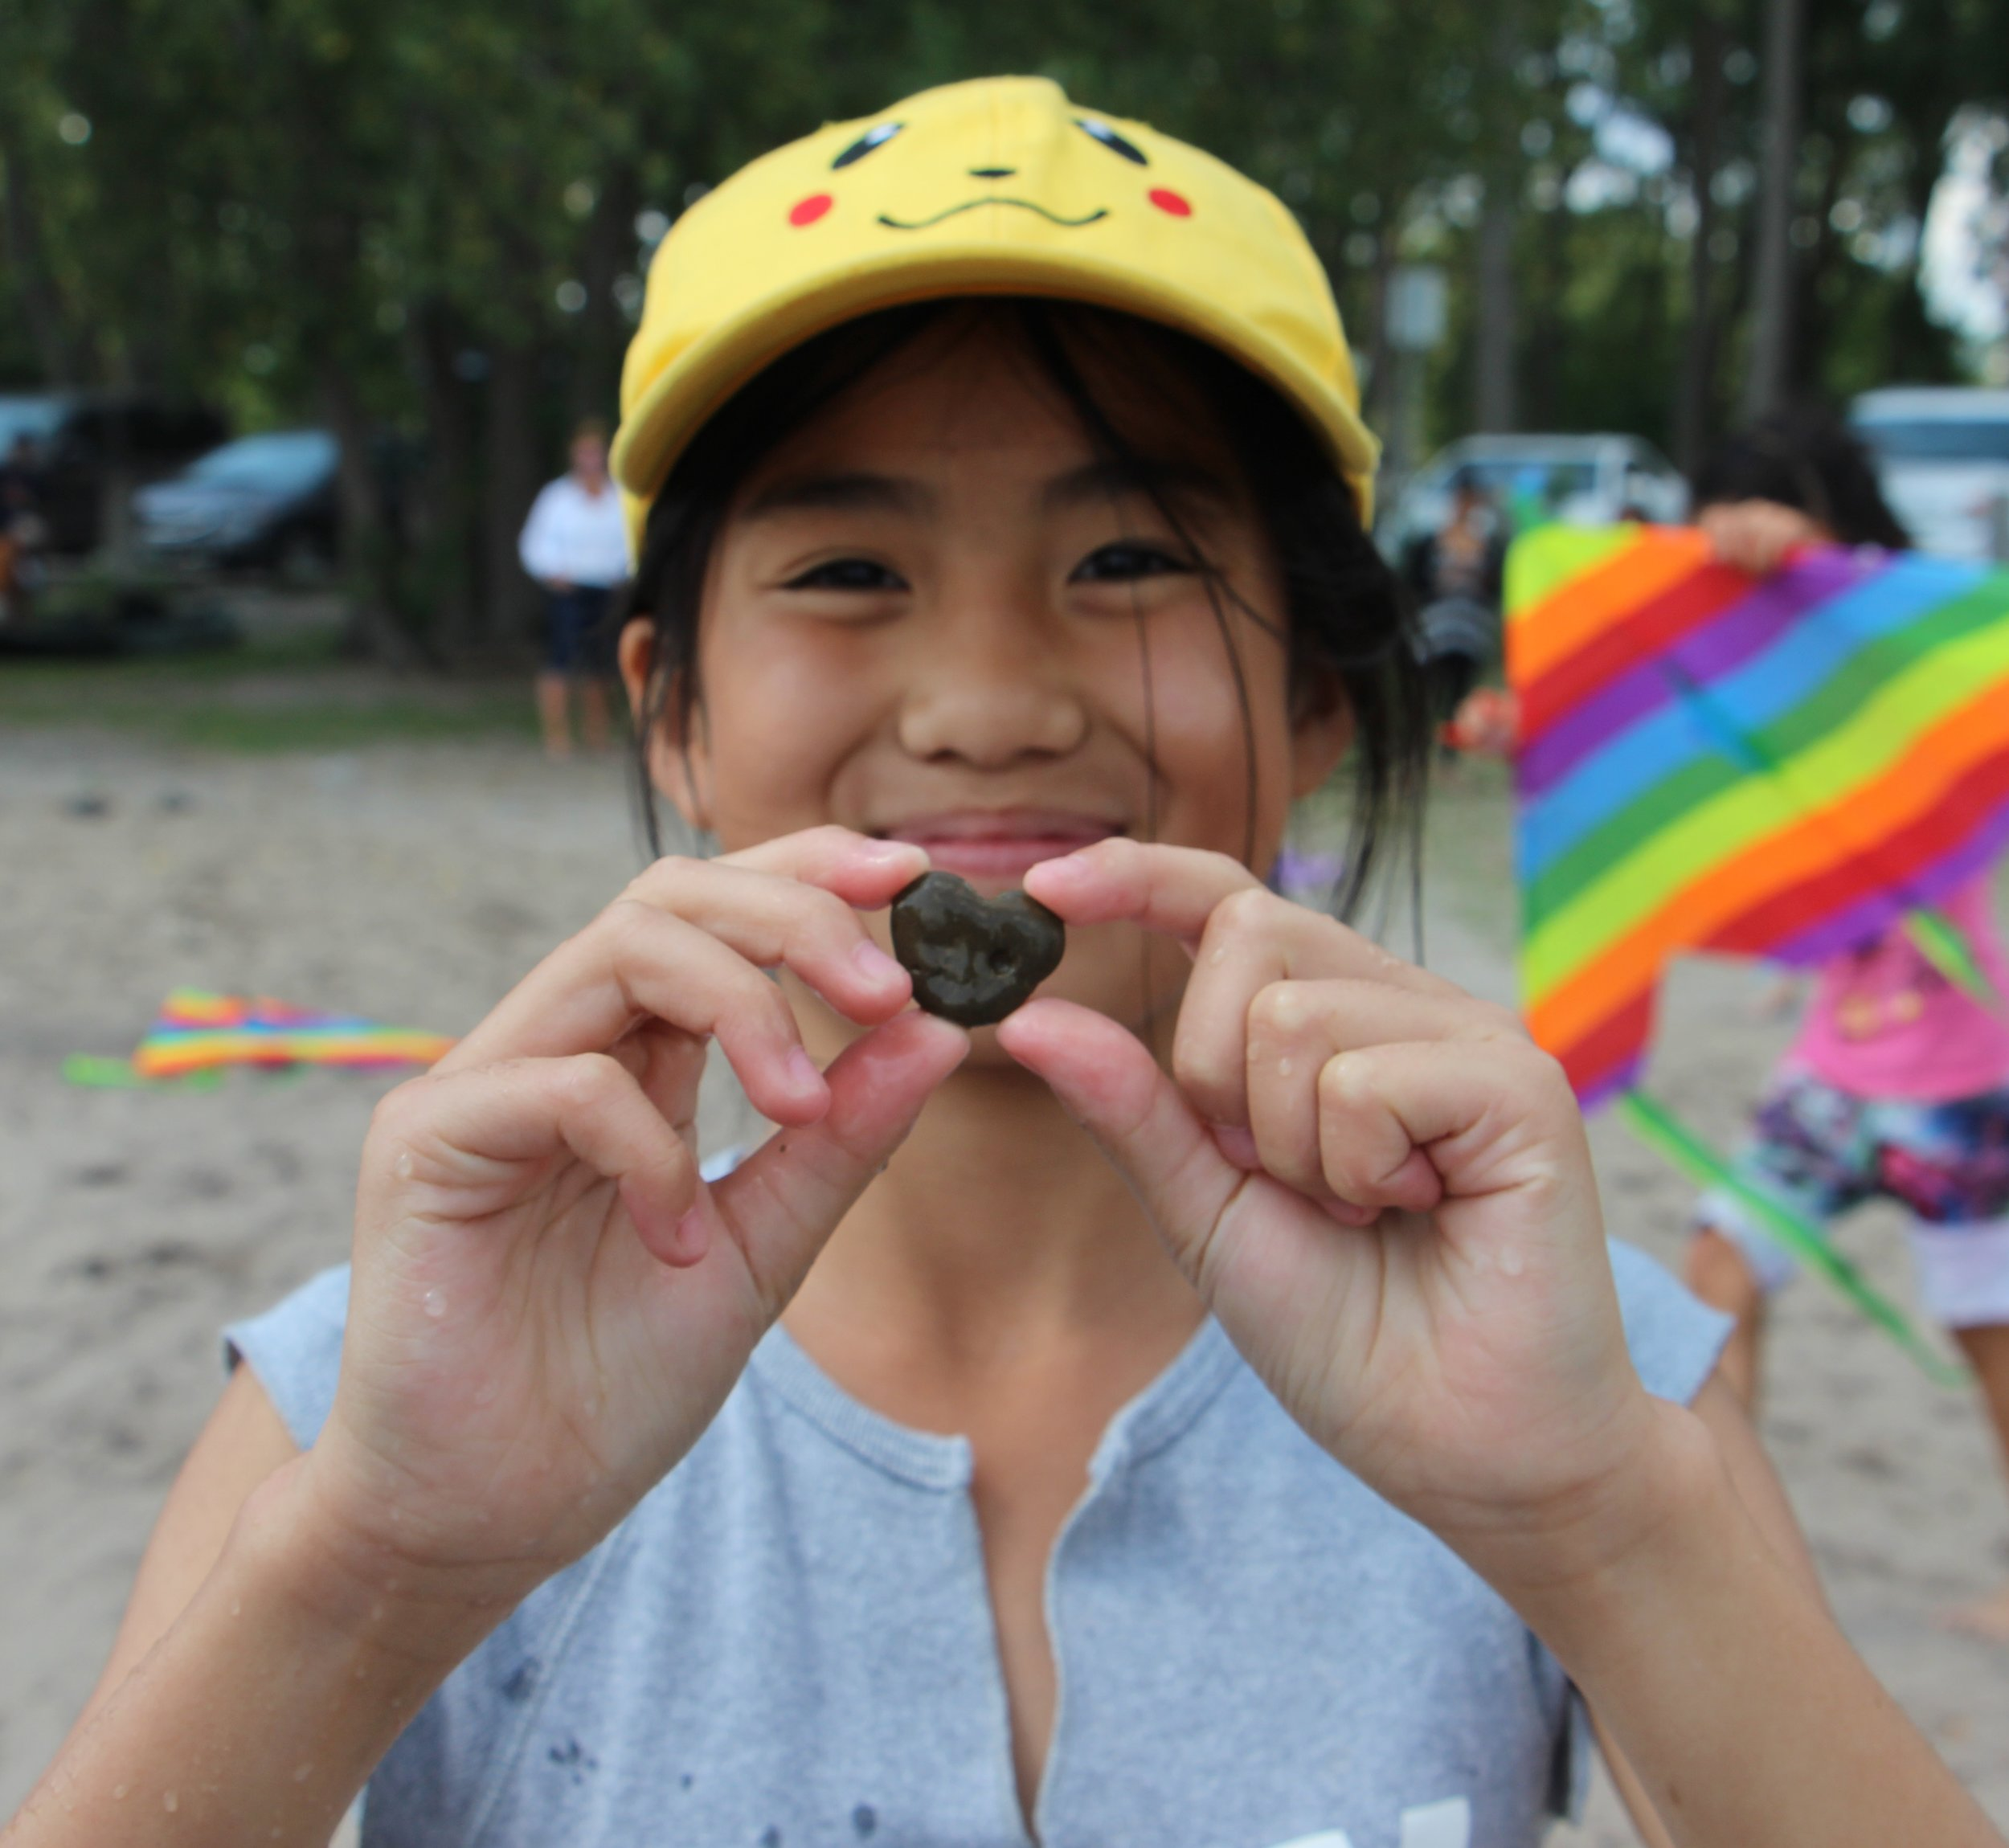 Nellie's_Child holding a stone that looks like a heart cropped.jpg